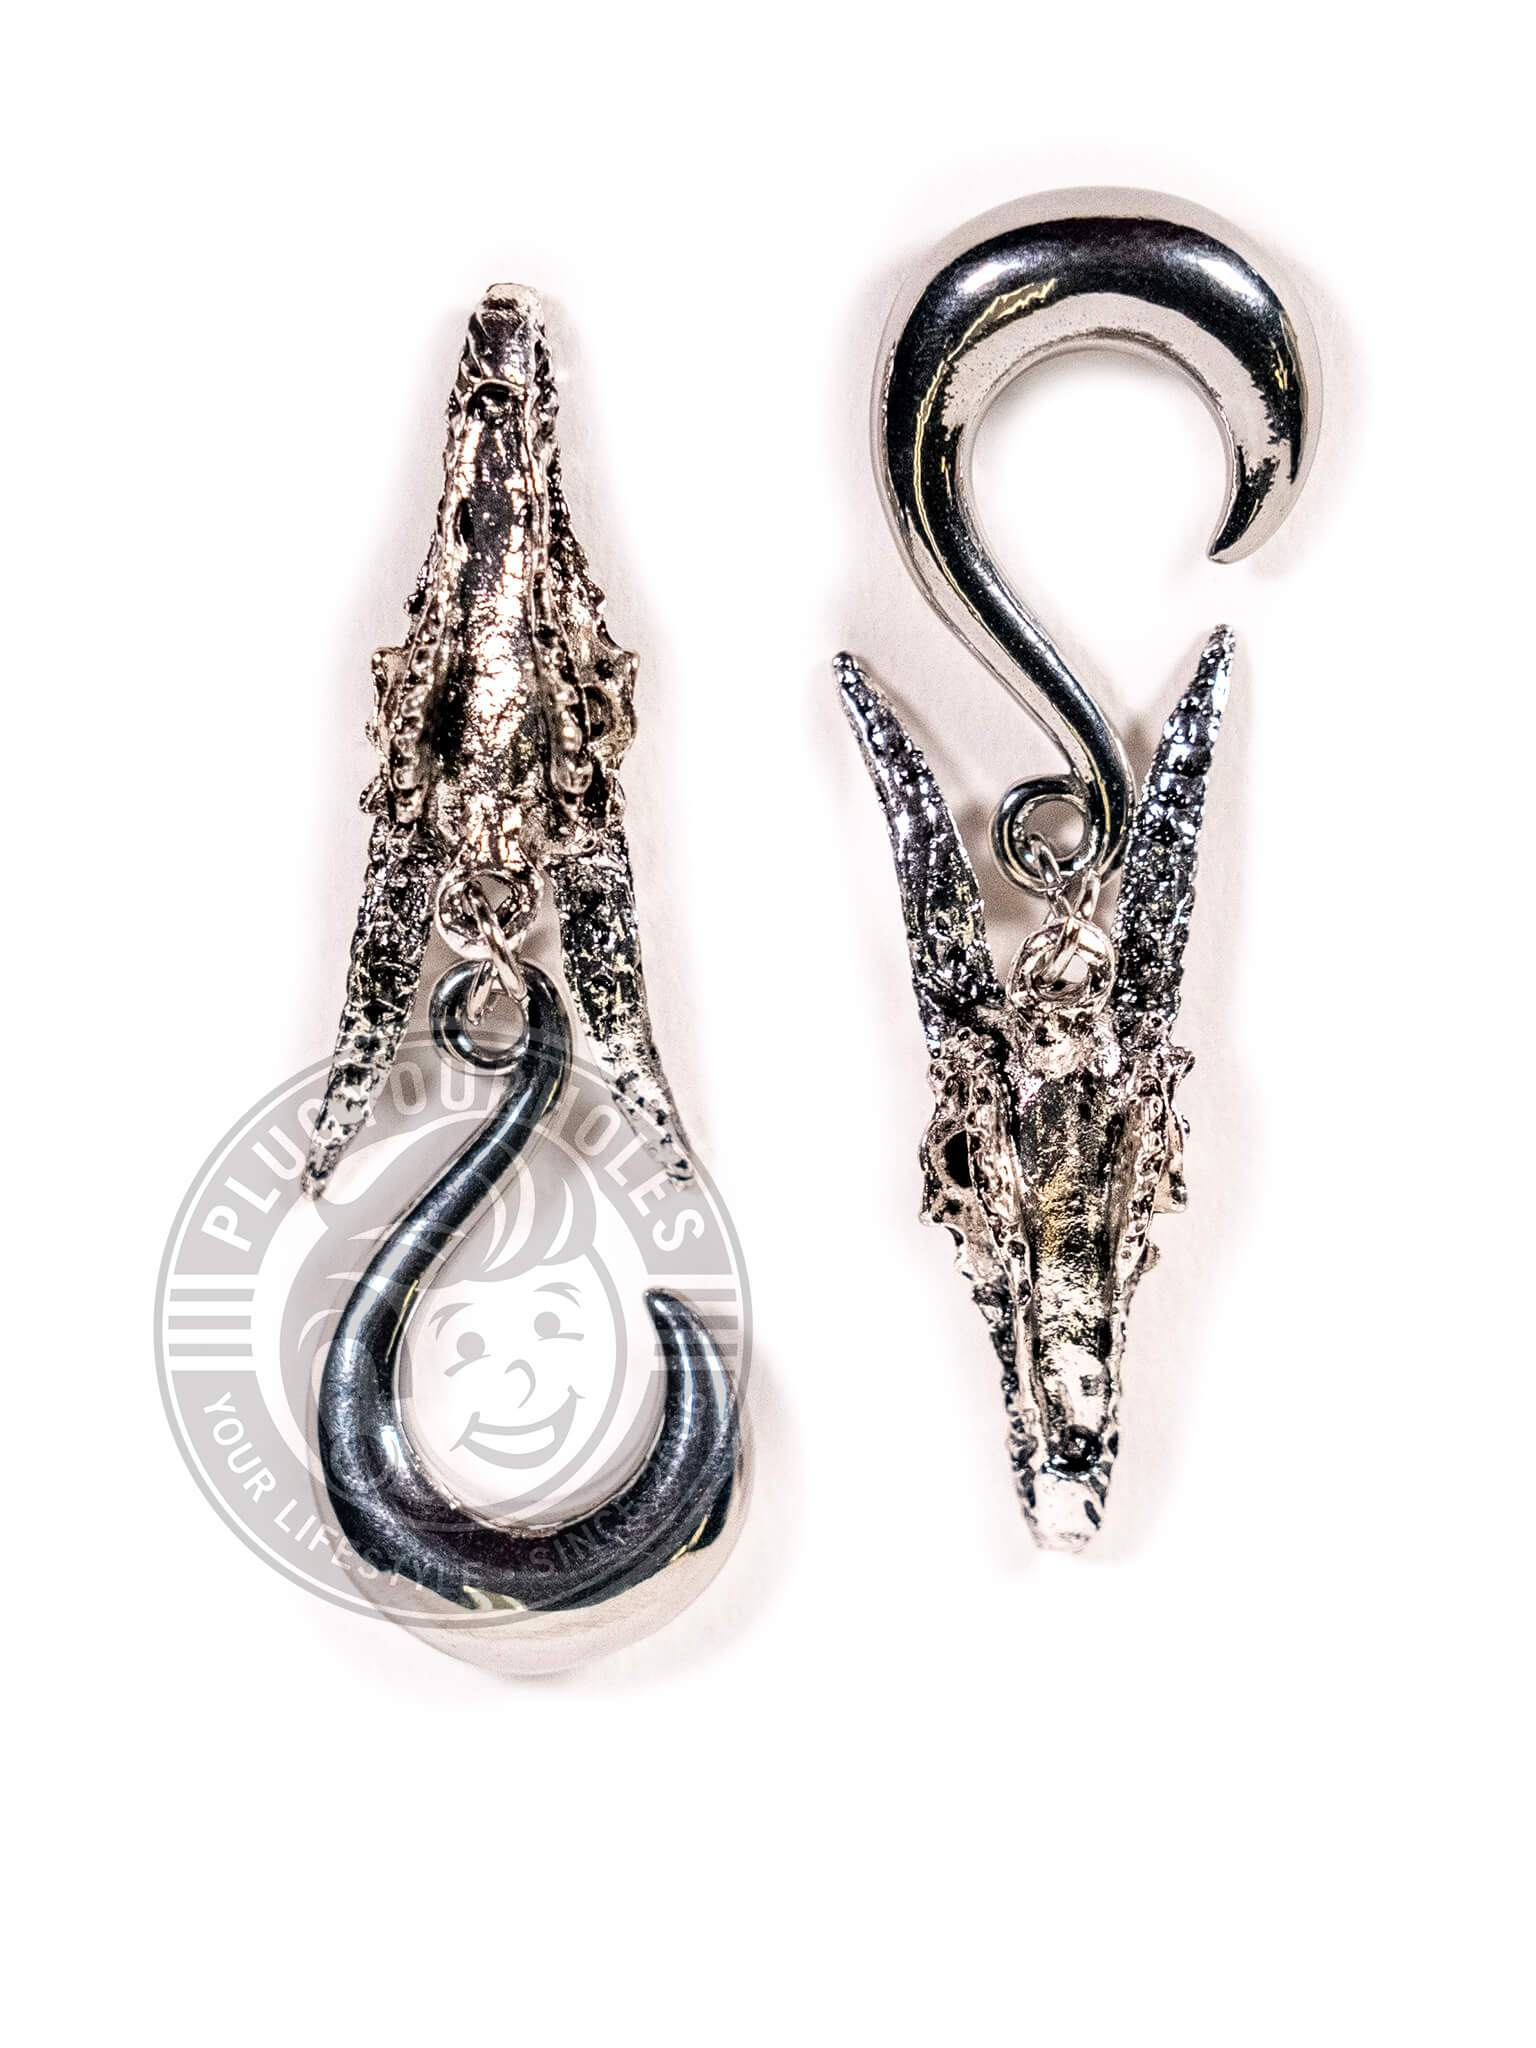 Dragon Head Steel Curled Hook Hangers